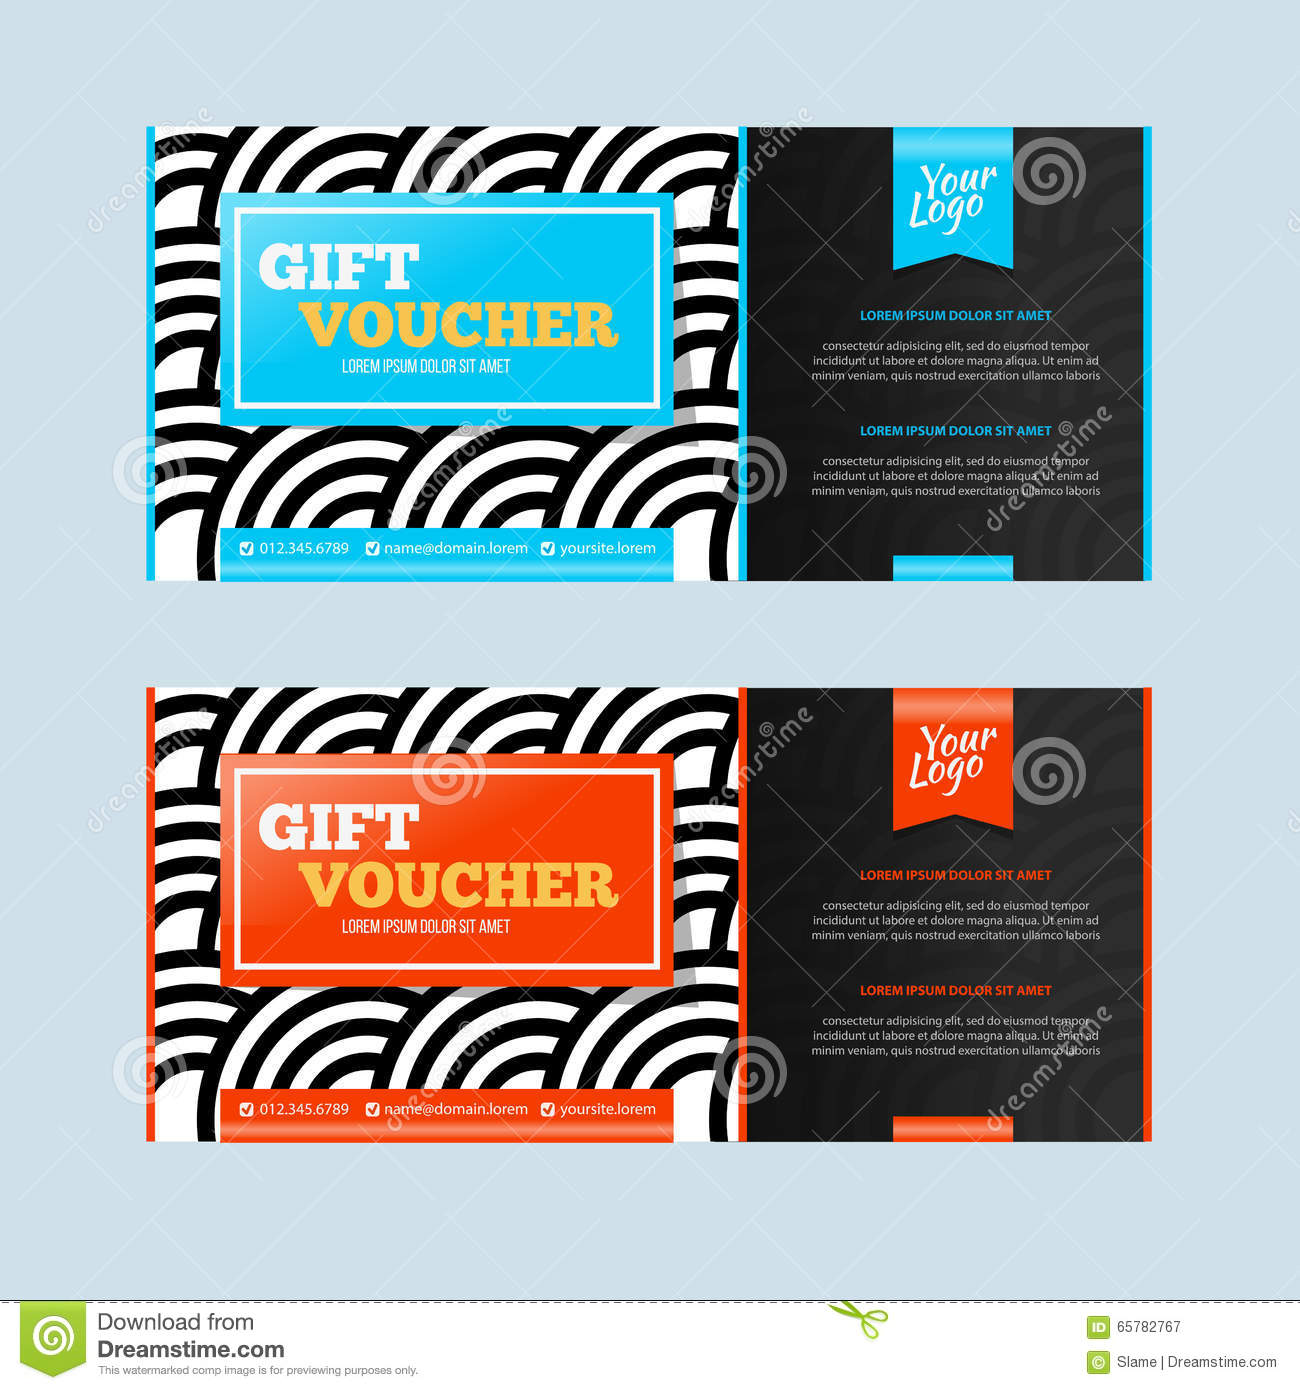 Two coupon voucher design gift voucher template with amount of royalty free vector download two coupon voucher xflitez Image collections